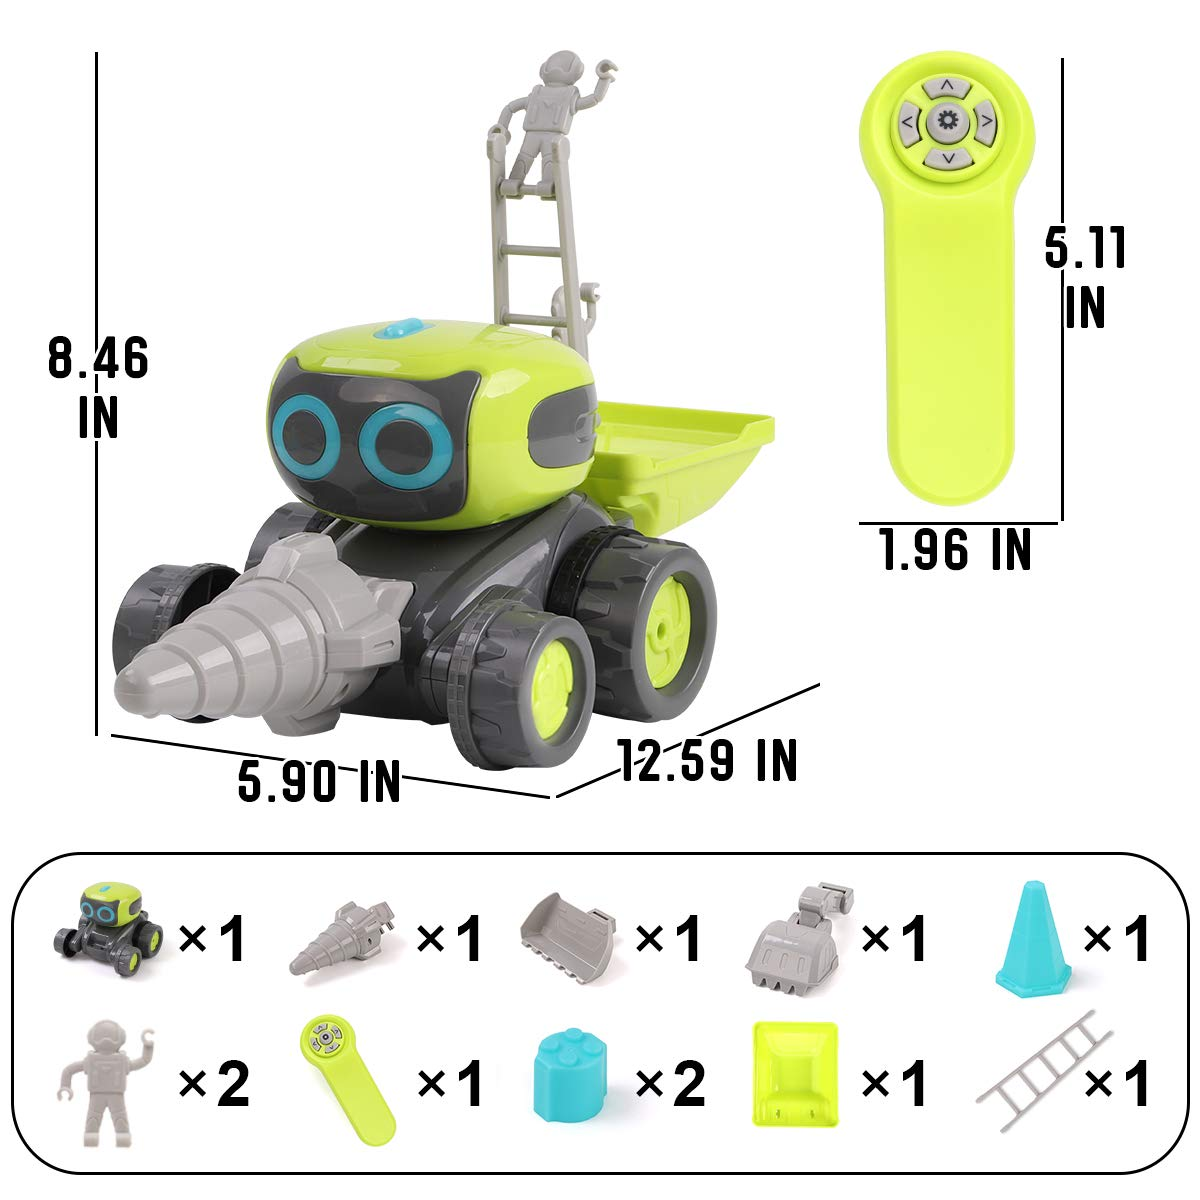 GILOBABY Remote Control Robot for Kids, 3 in 1 RC Robot Engineering Vehicle, Dance Moves, Plays Music, Light-up Eyes, Gift for Kids Age 3+ by GILOBABY (Image #7)